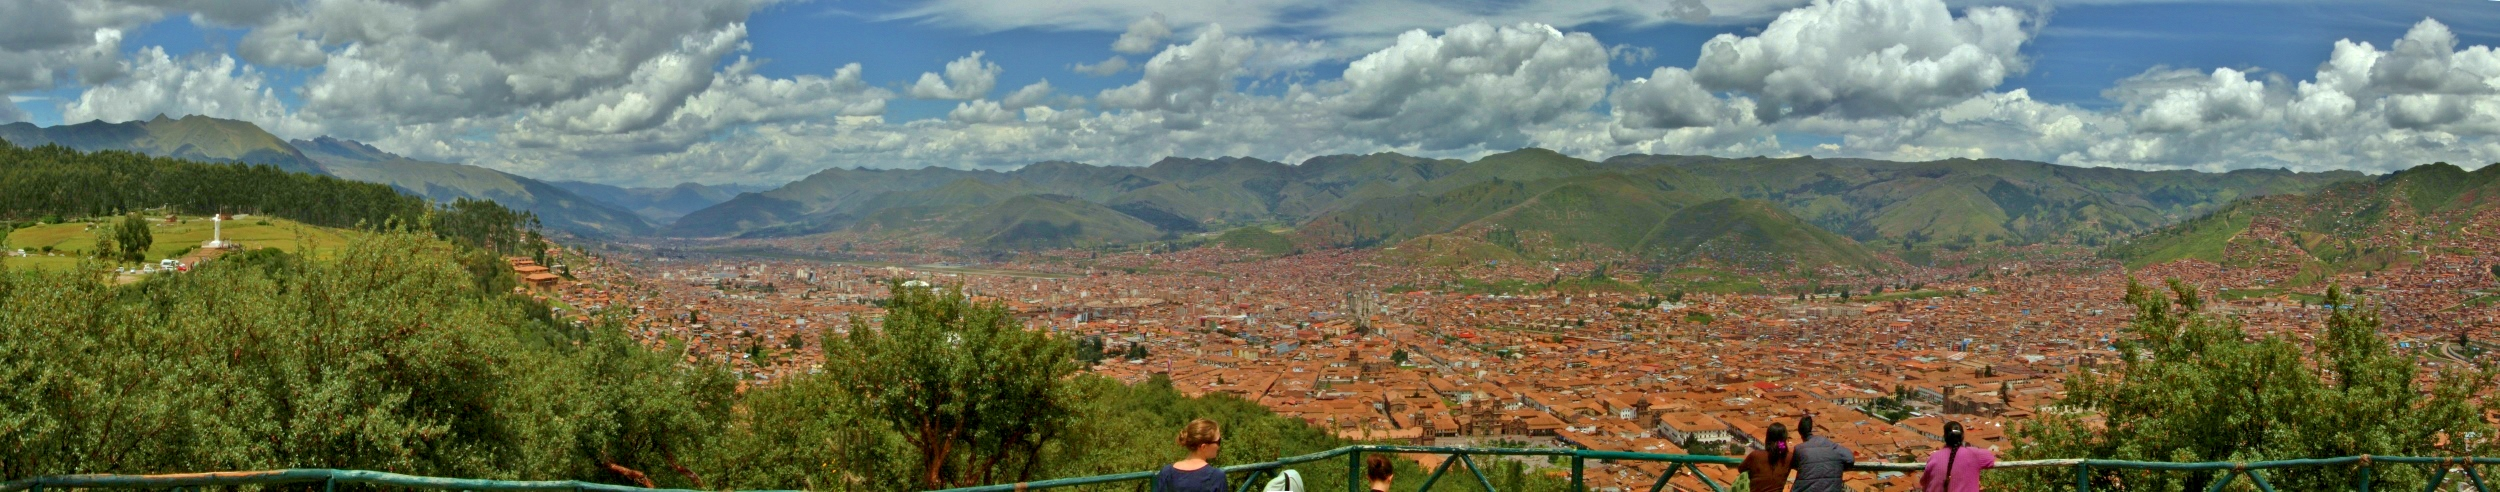 Not a bad view of Cusco.  Good for taking pictures, or hurling rocks on top of conquistadors' heads.   Click for full-size image